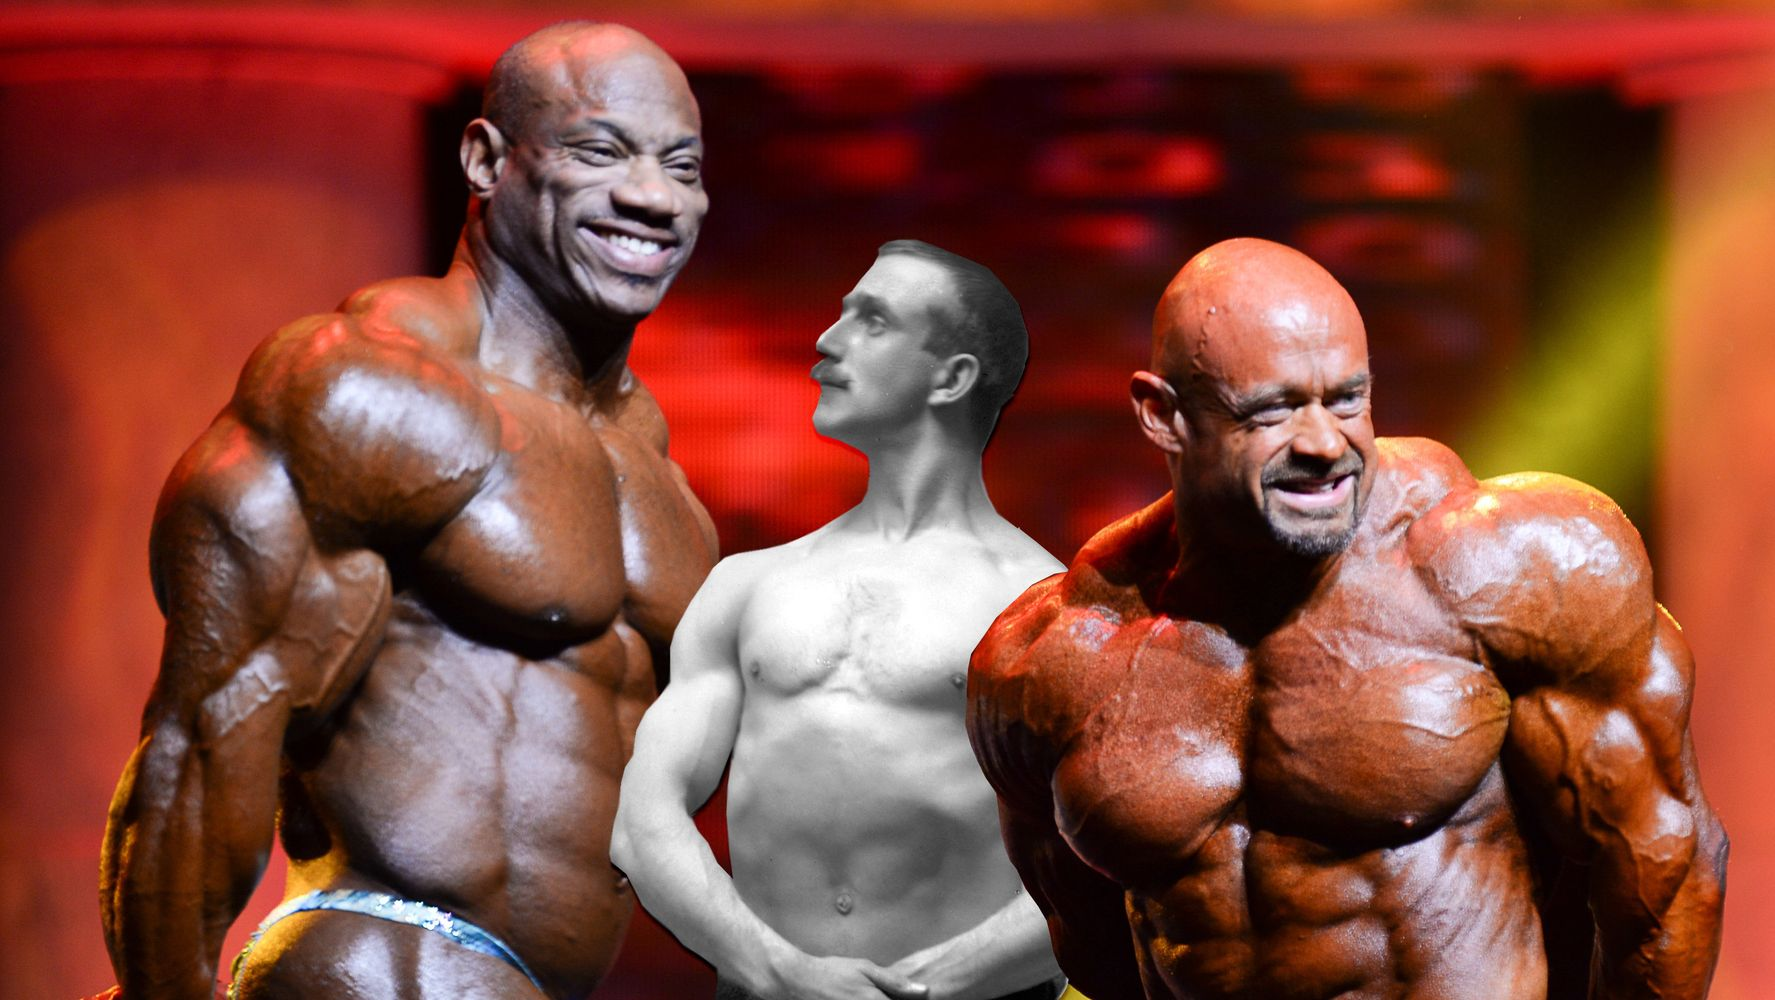 A Century Of Bodybuilding Photos Show A Marked Shift In Our Perception Of Body Image Huffpost Life